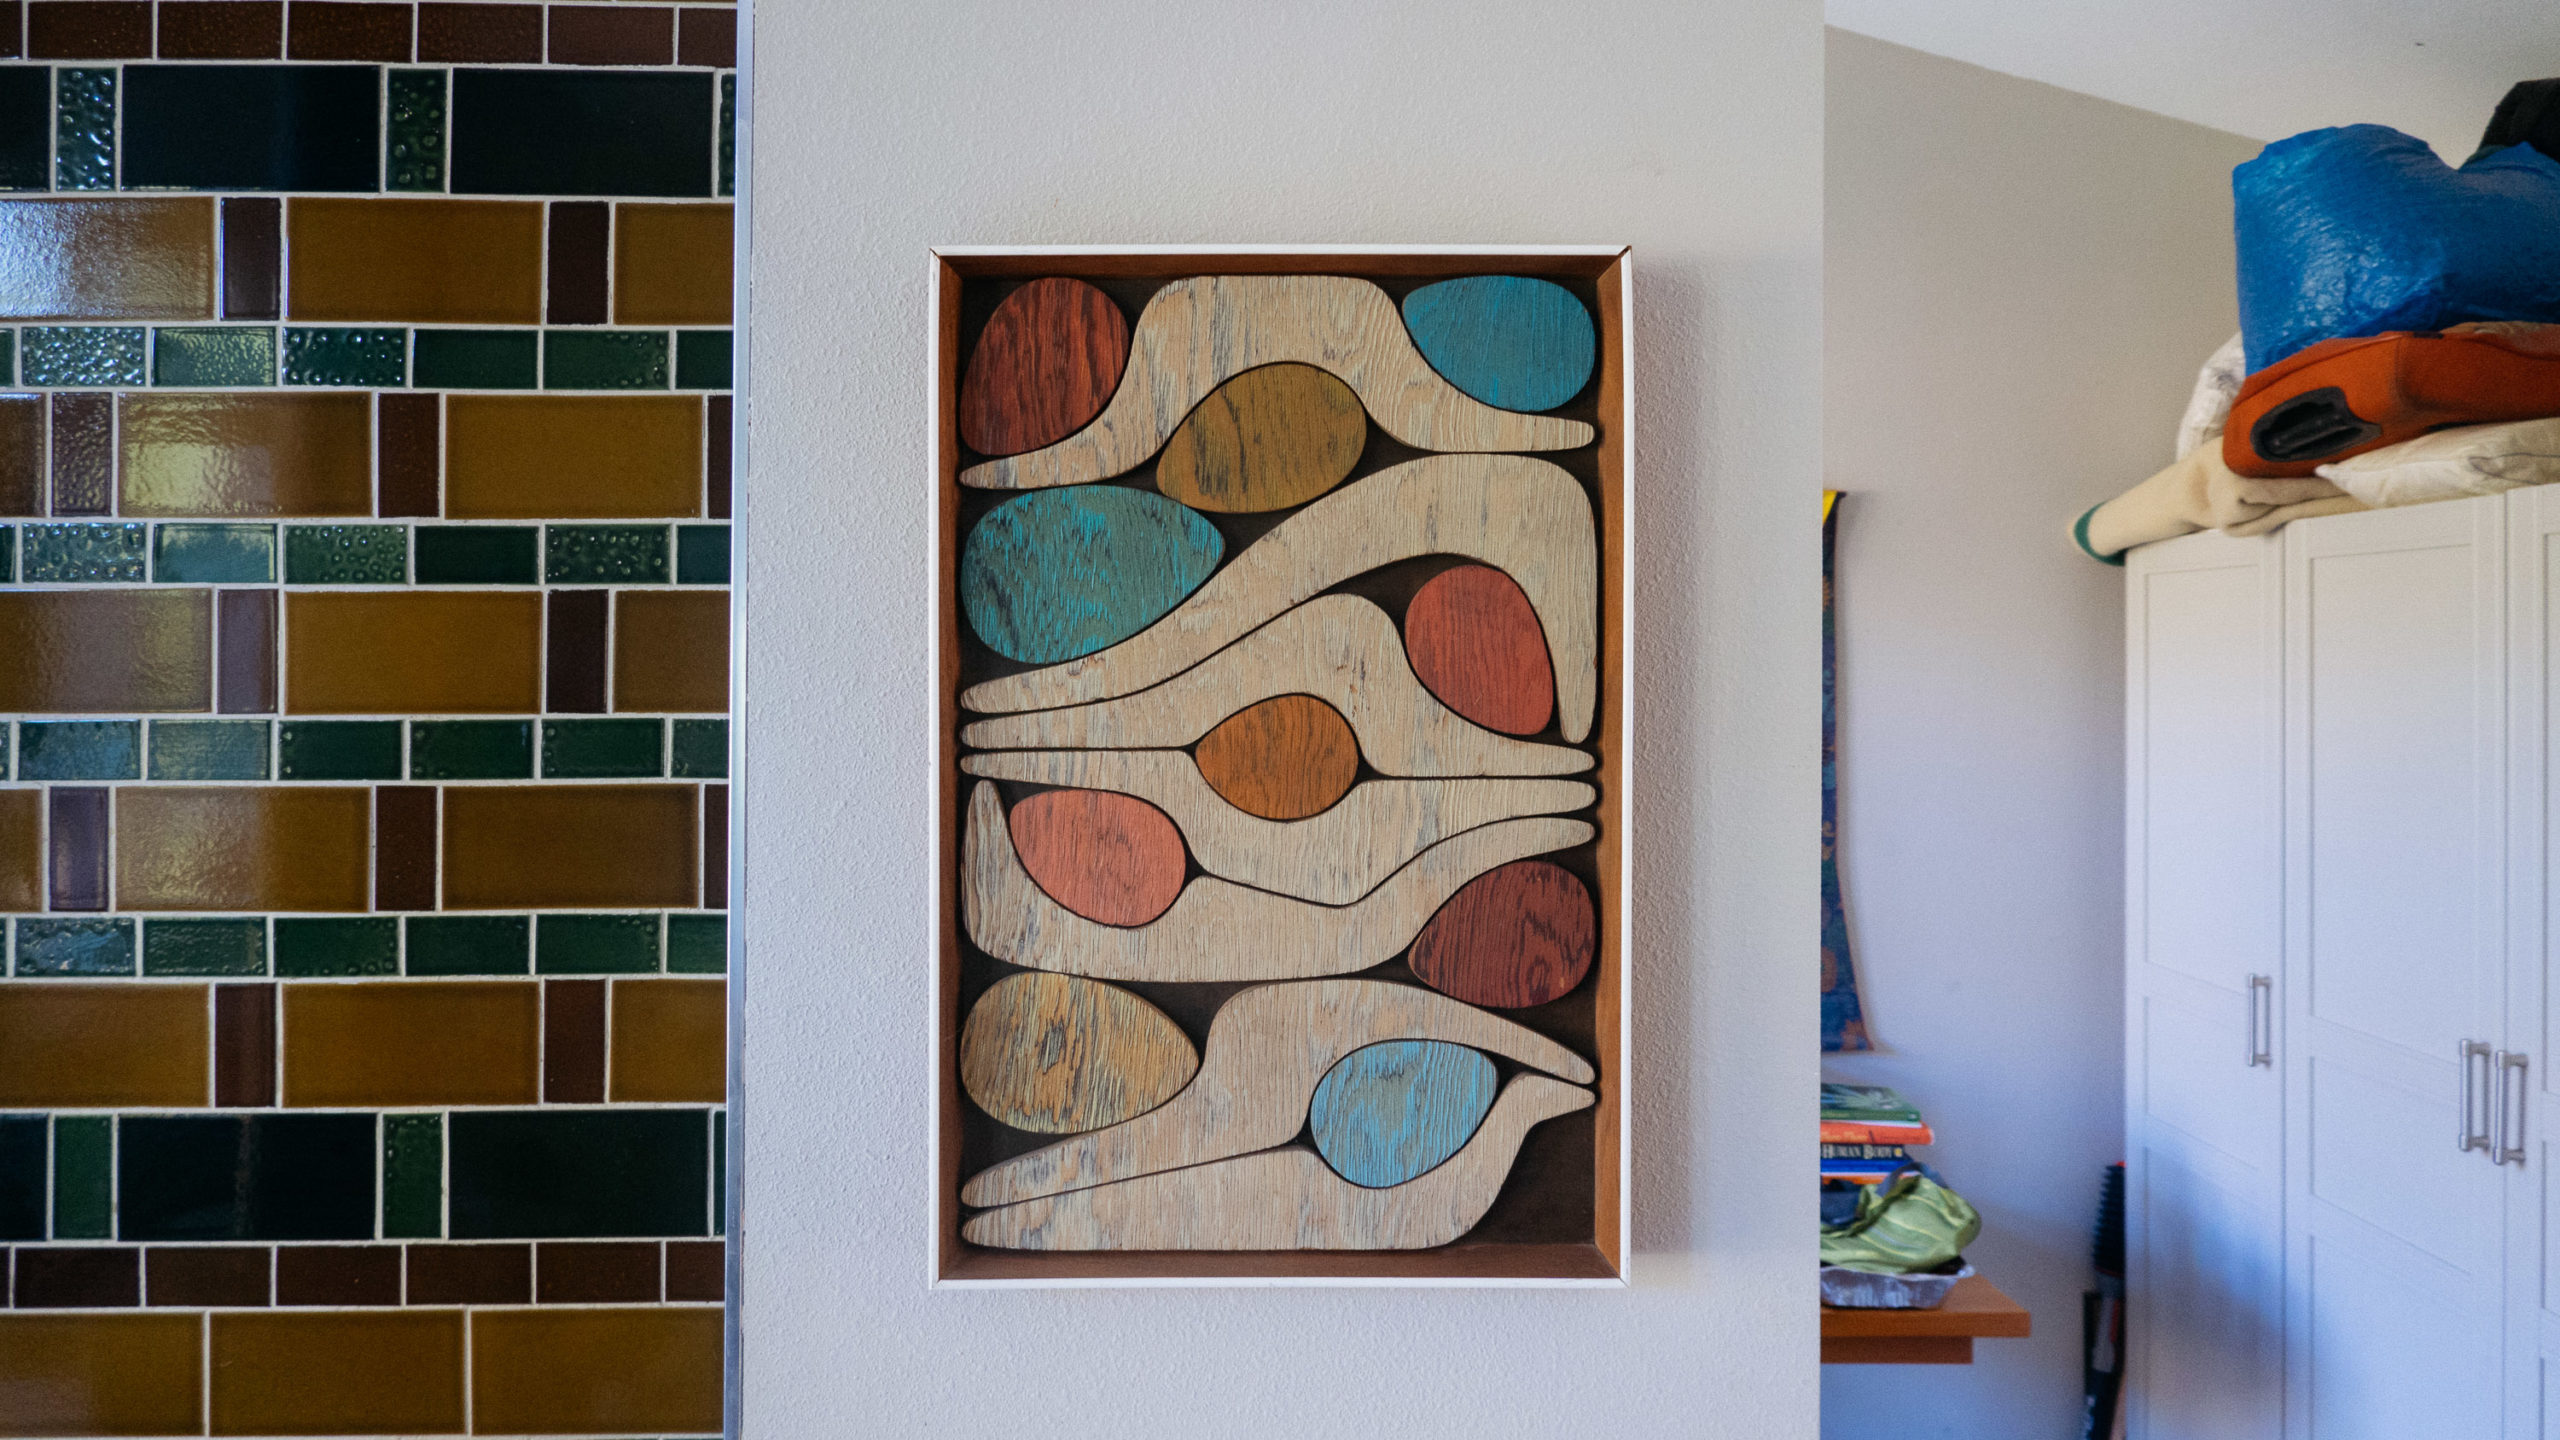 An abstract piece of art made from wood